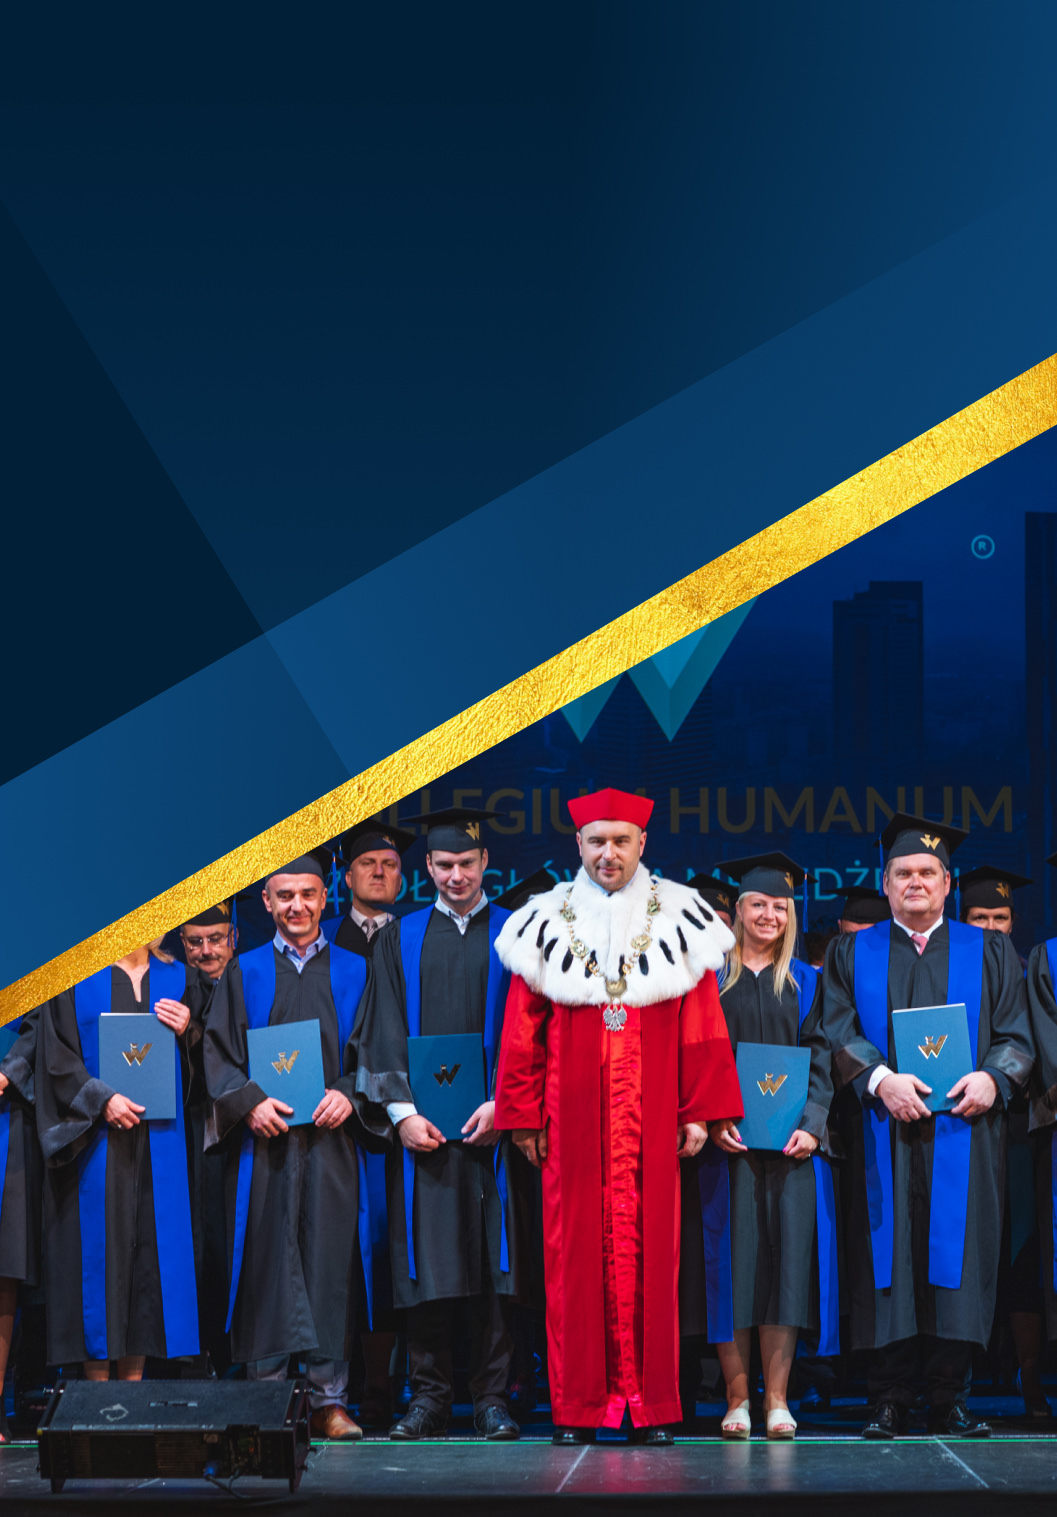 Executive Master of Business Administration MBA